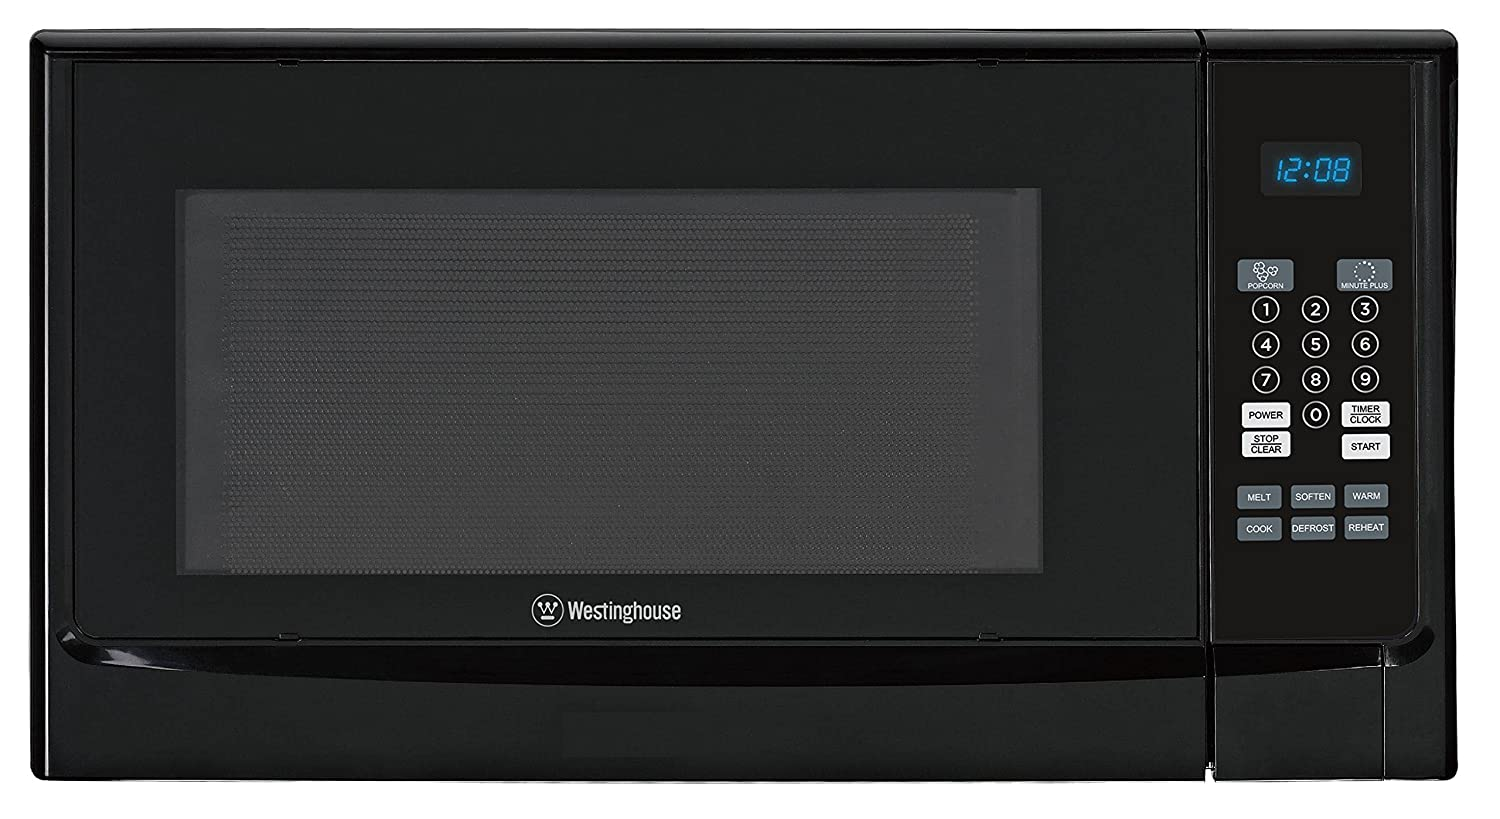 Westinghouse WCM14110B 1100 Watt Counter Top Microwave Oven, 1.4 Cubic Feet, Black Cabinet